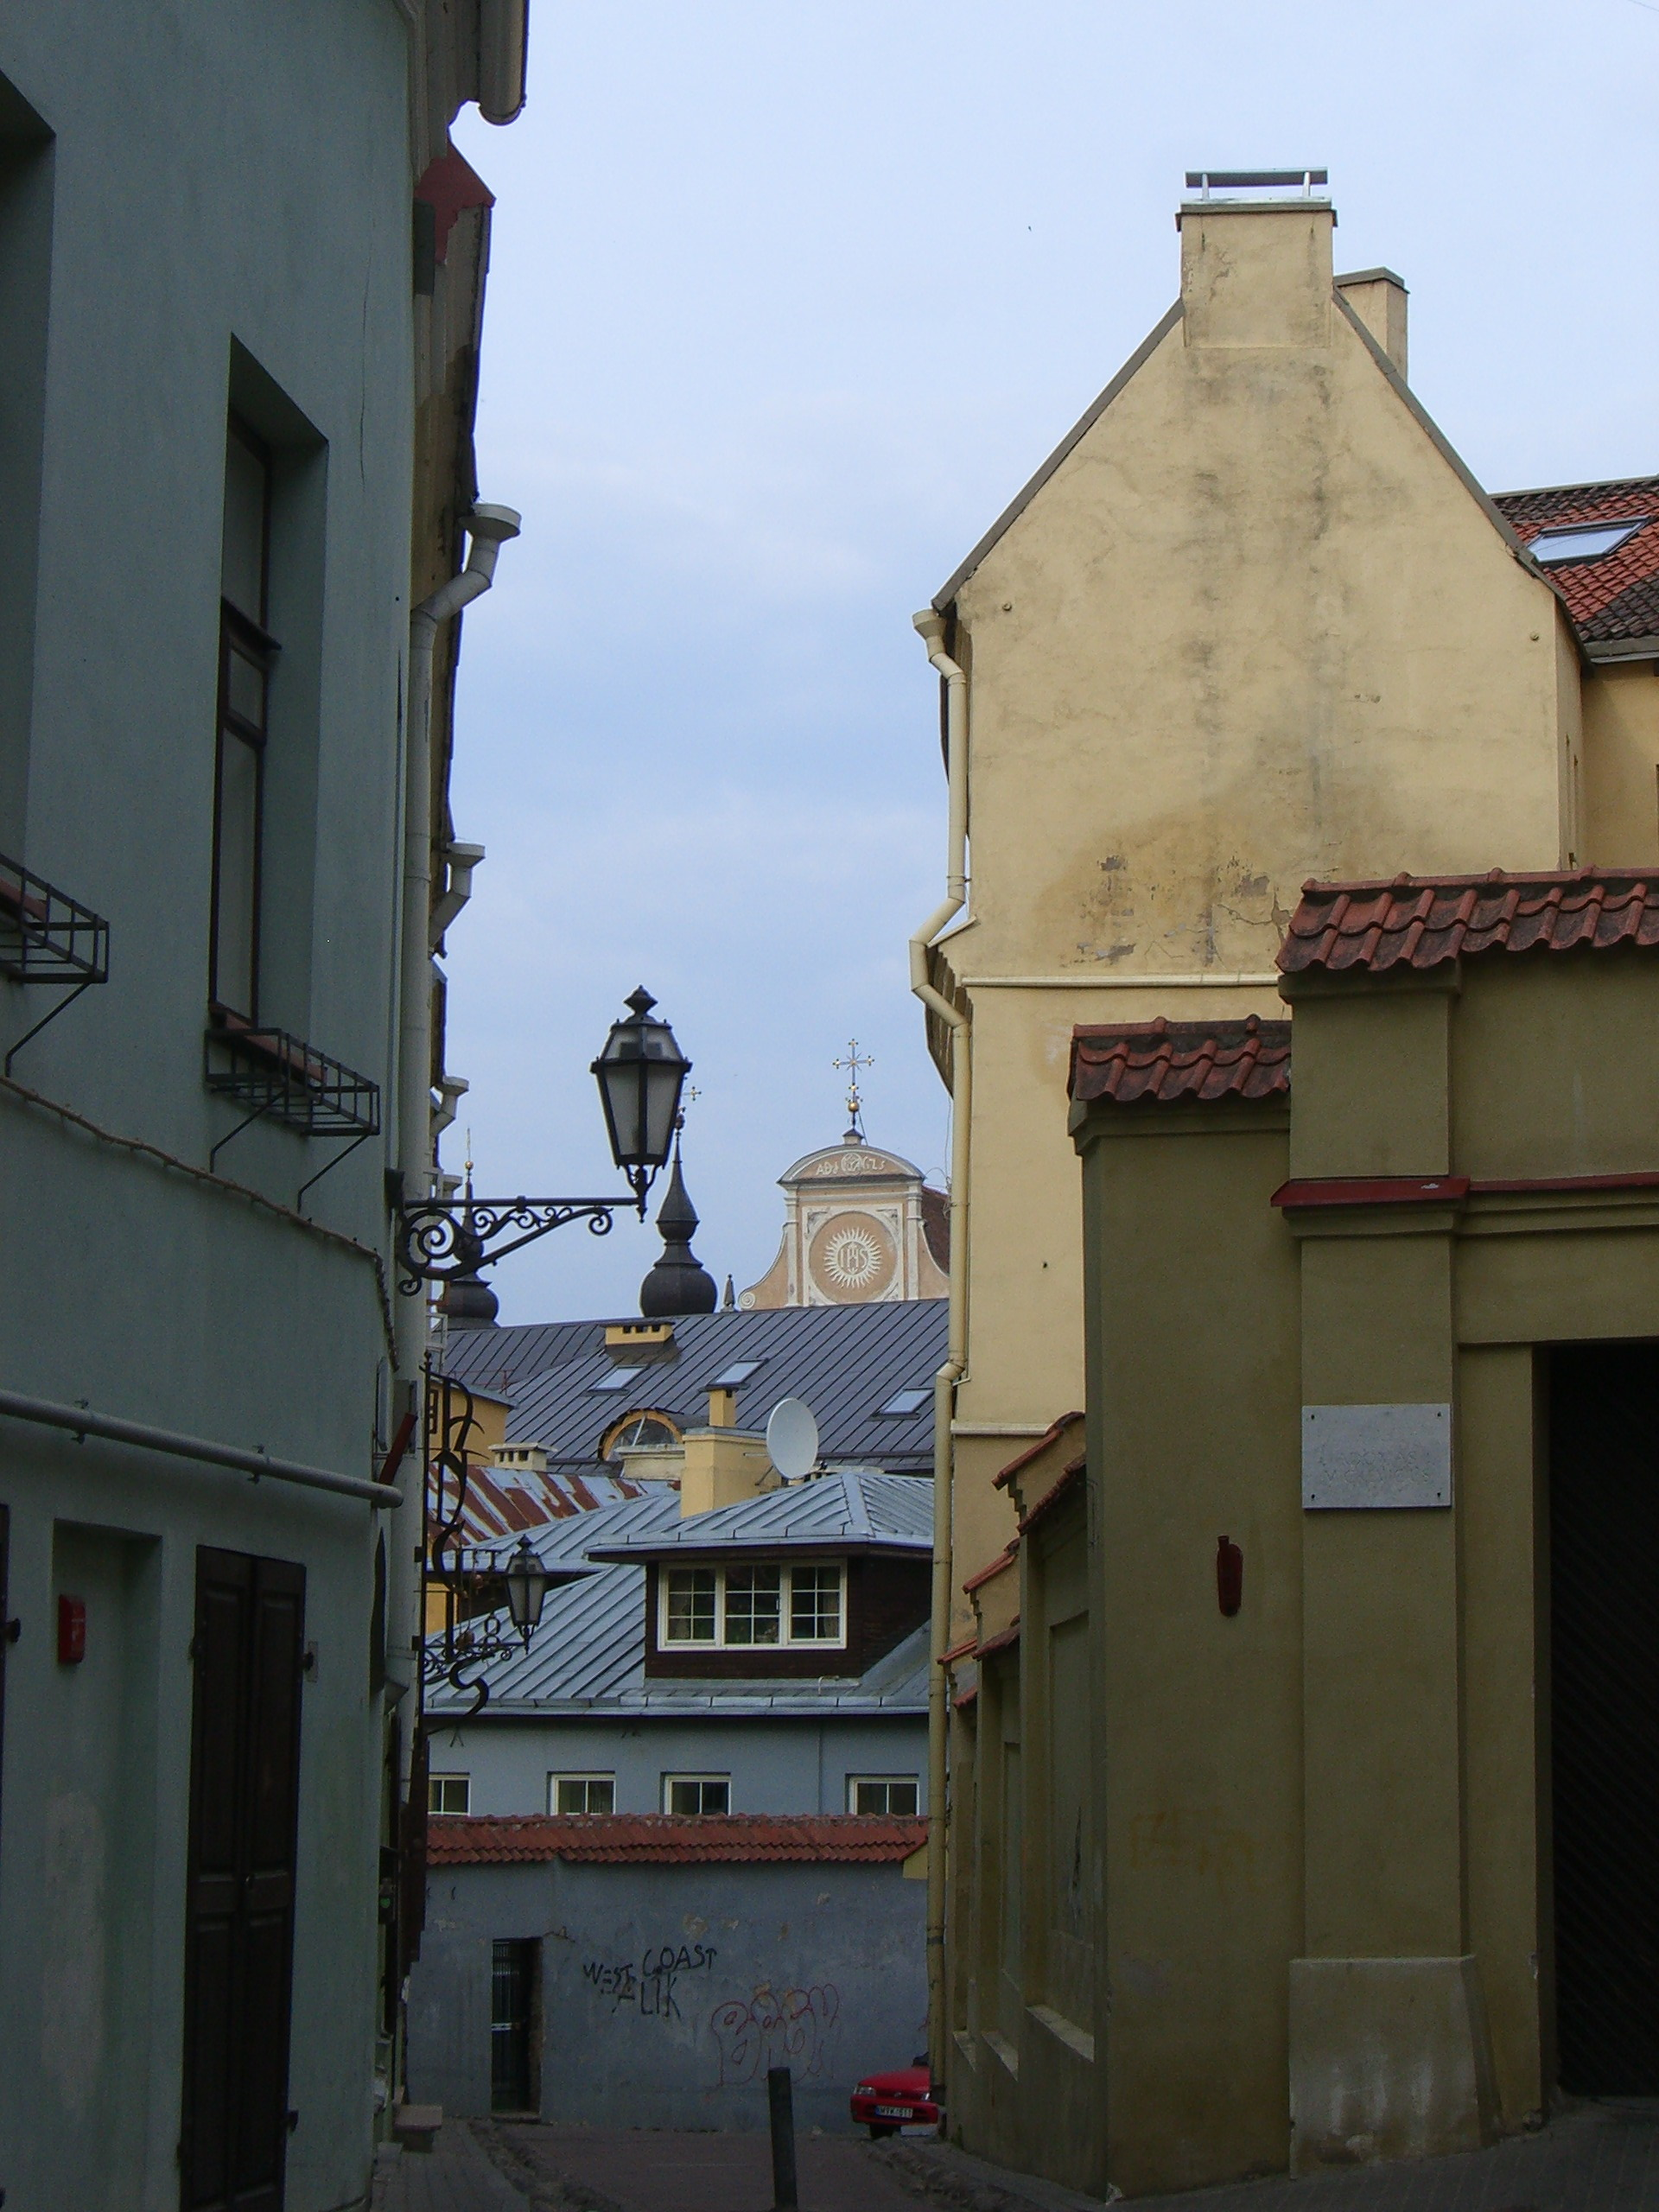 An alley in the Old Town